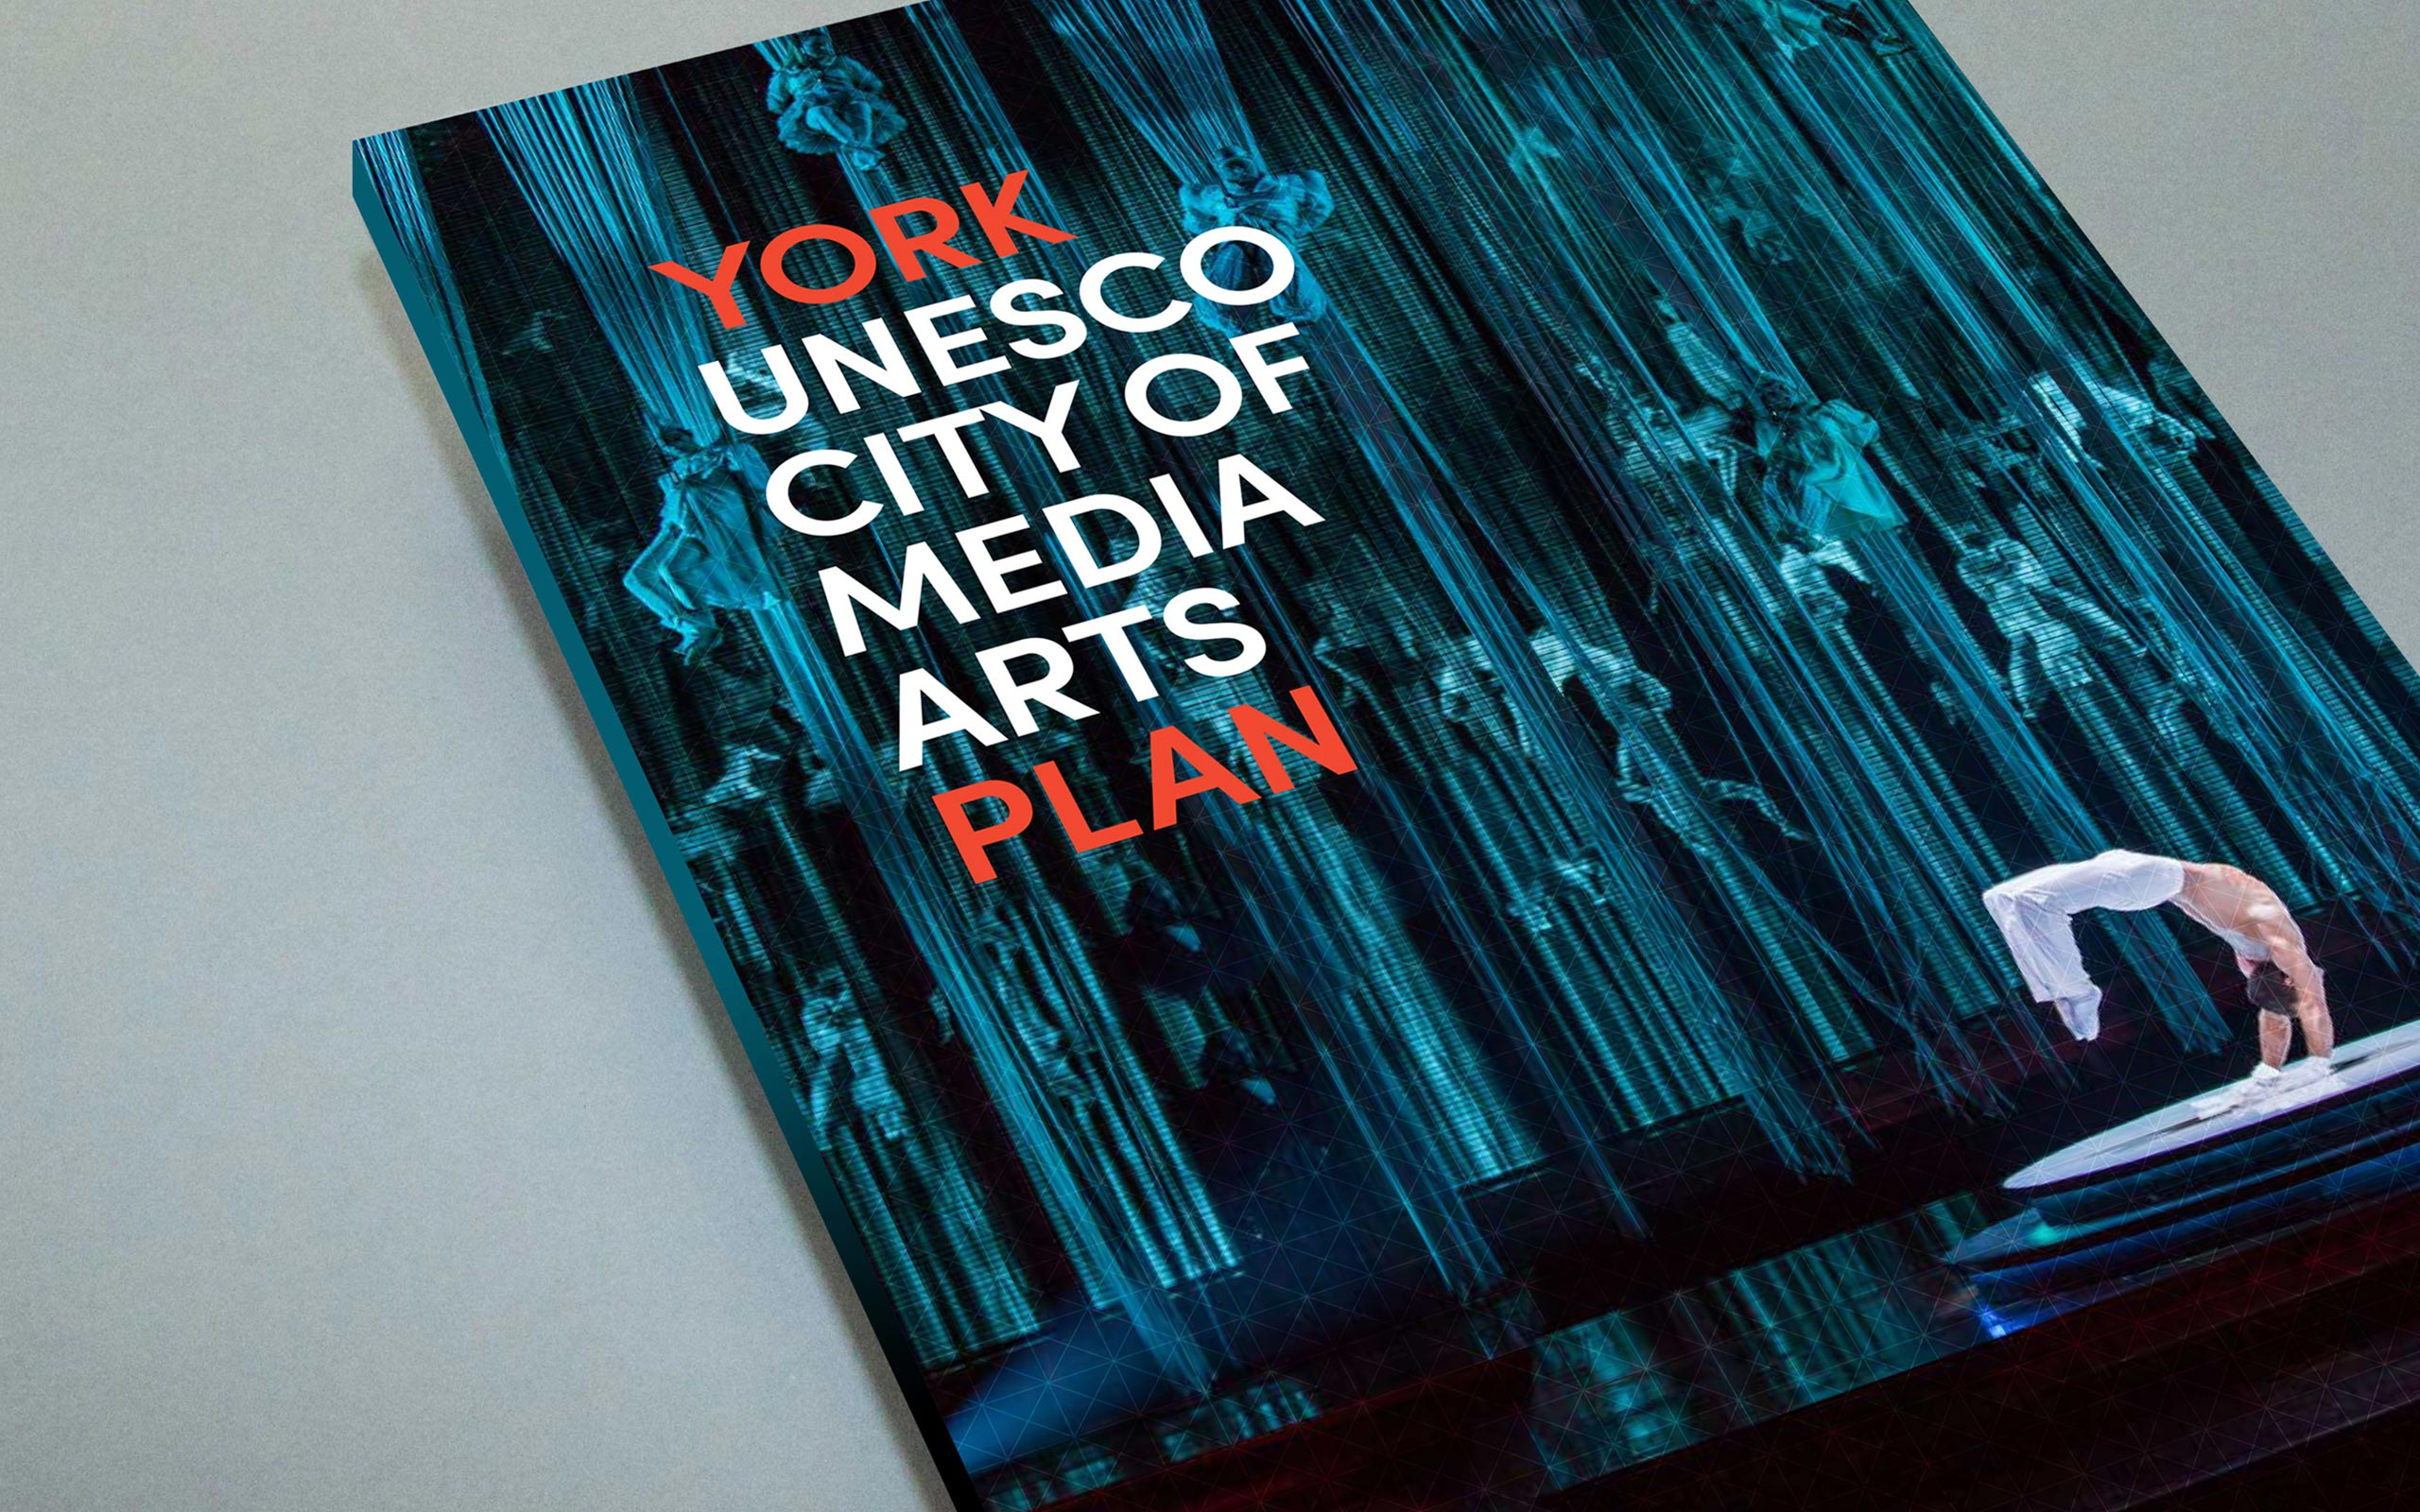 York Unesco City of media Arts Plan